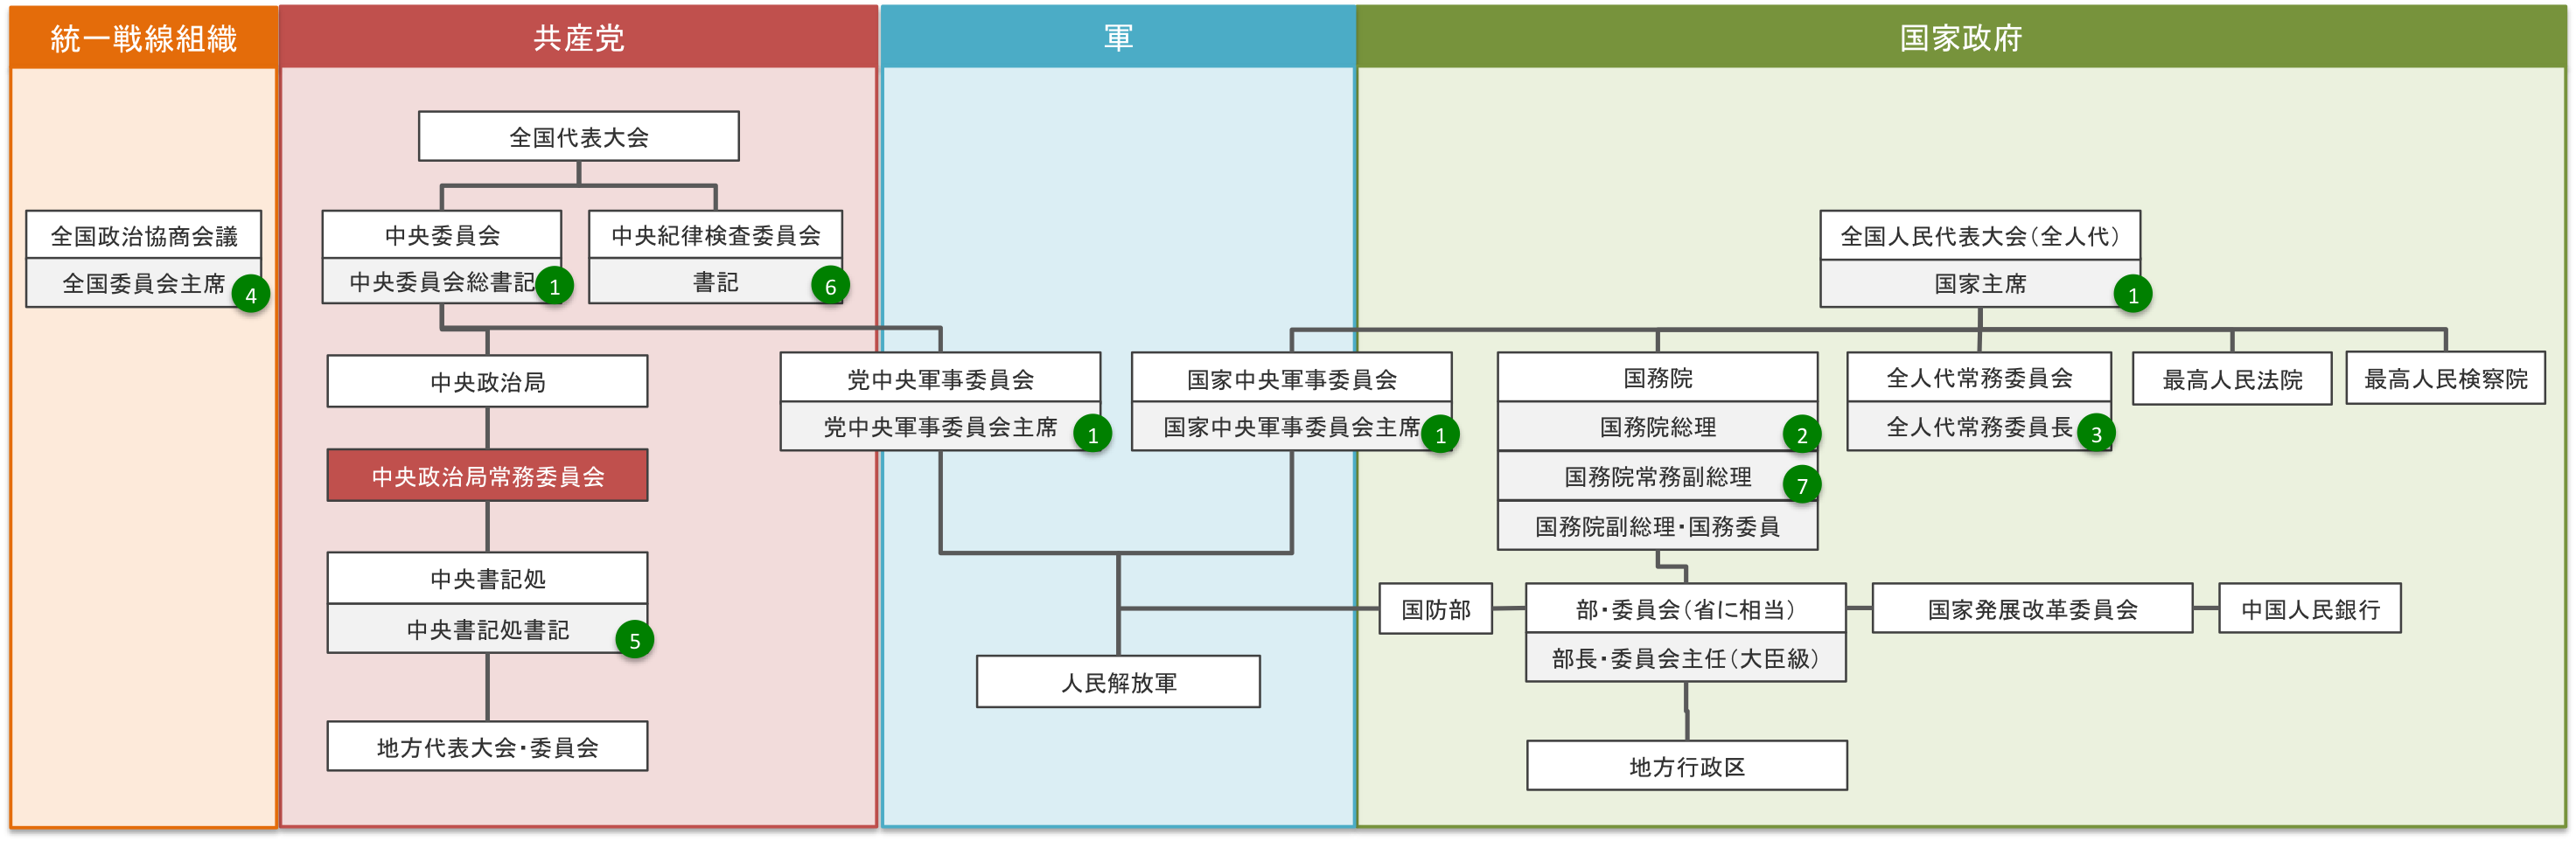 china-policical-governance-structure